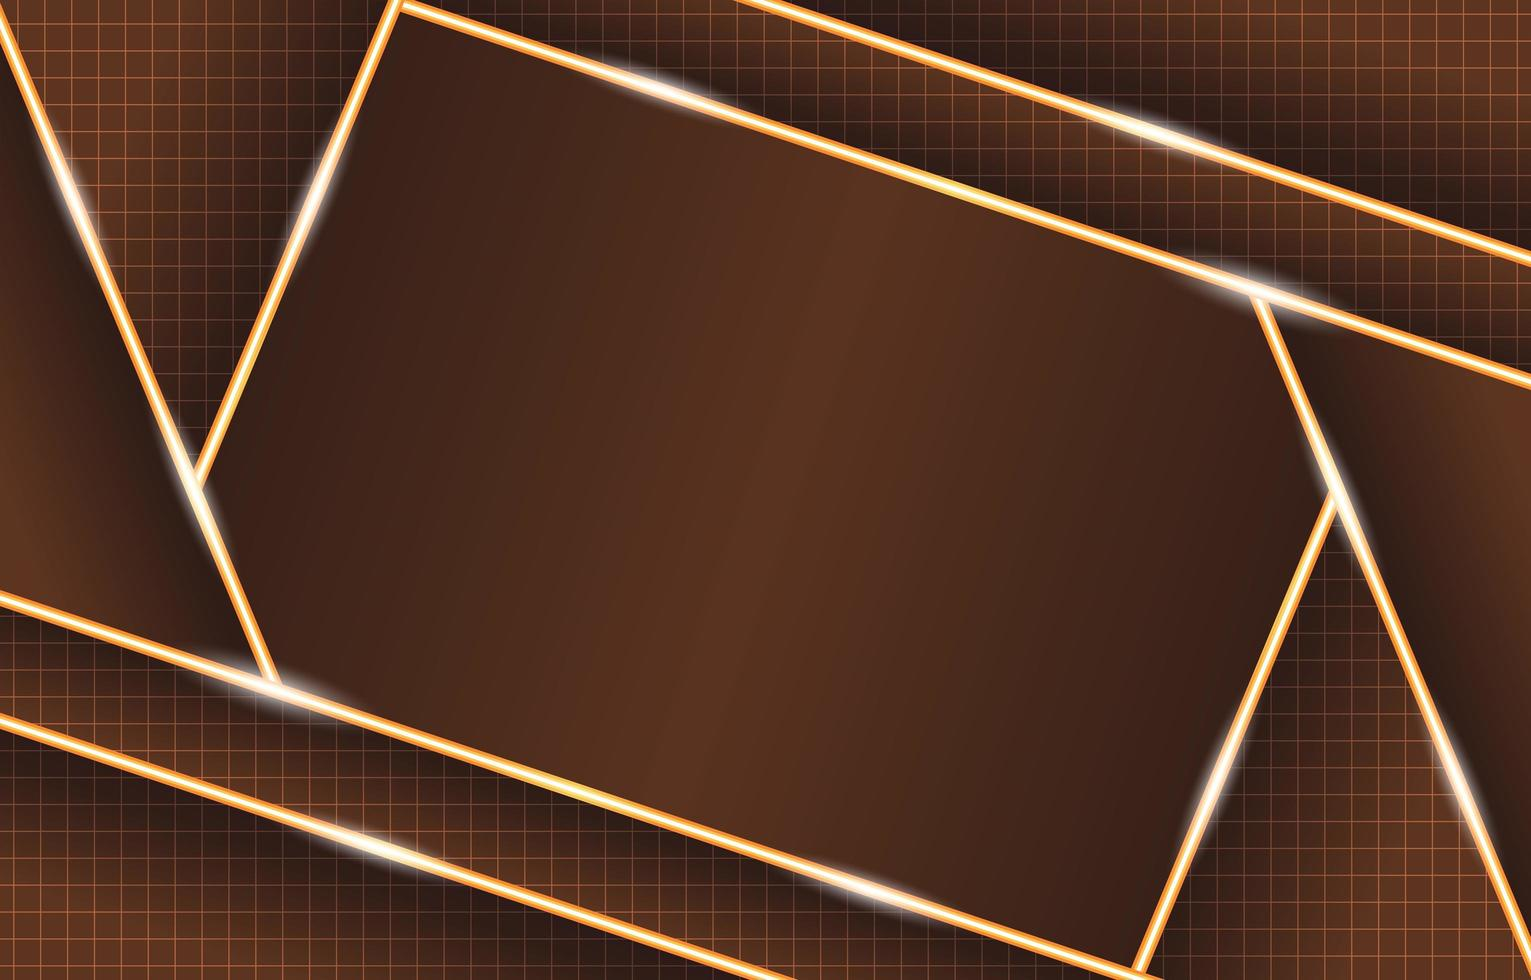 Glowing Geometric Brown Gold Neon Lights Composition vector